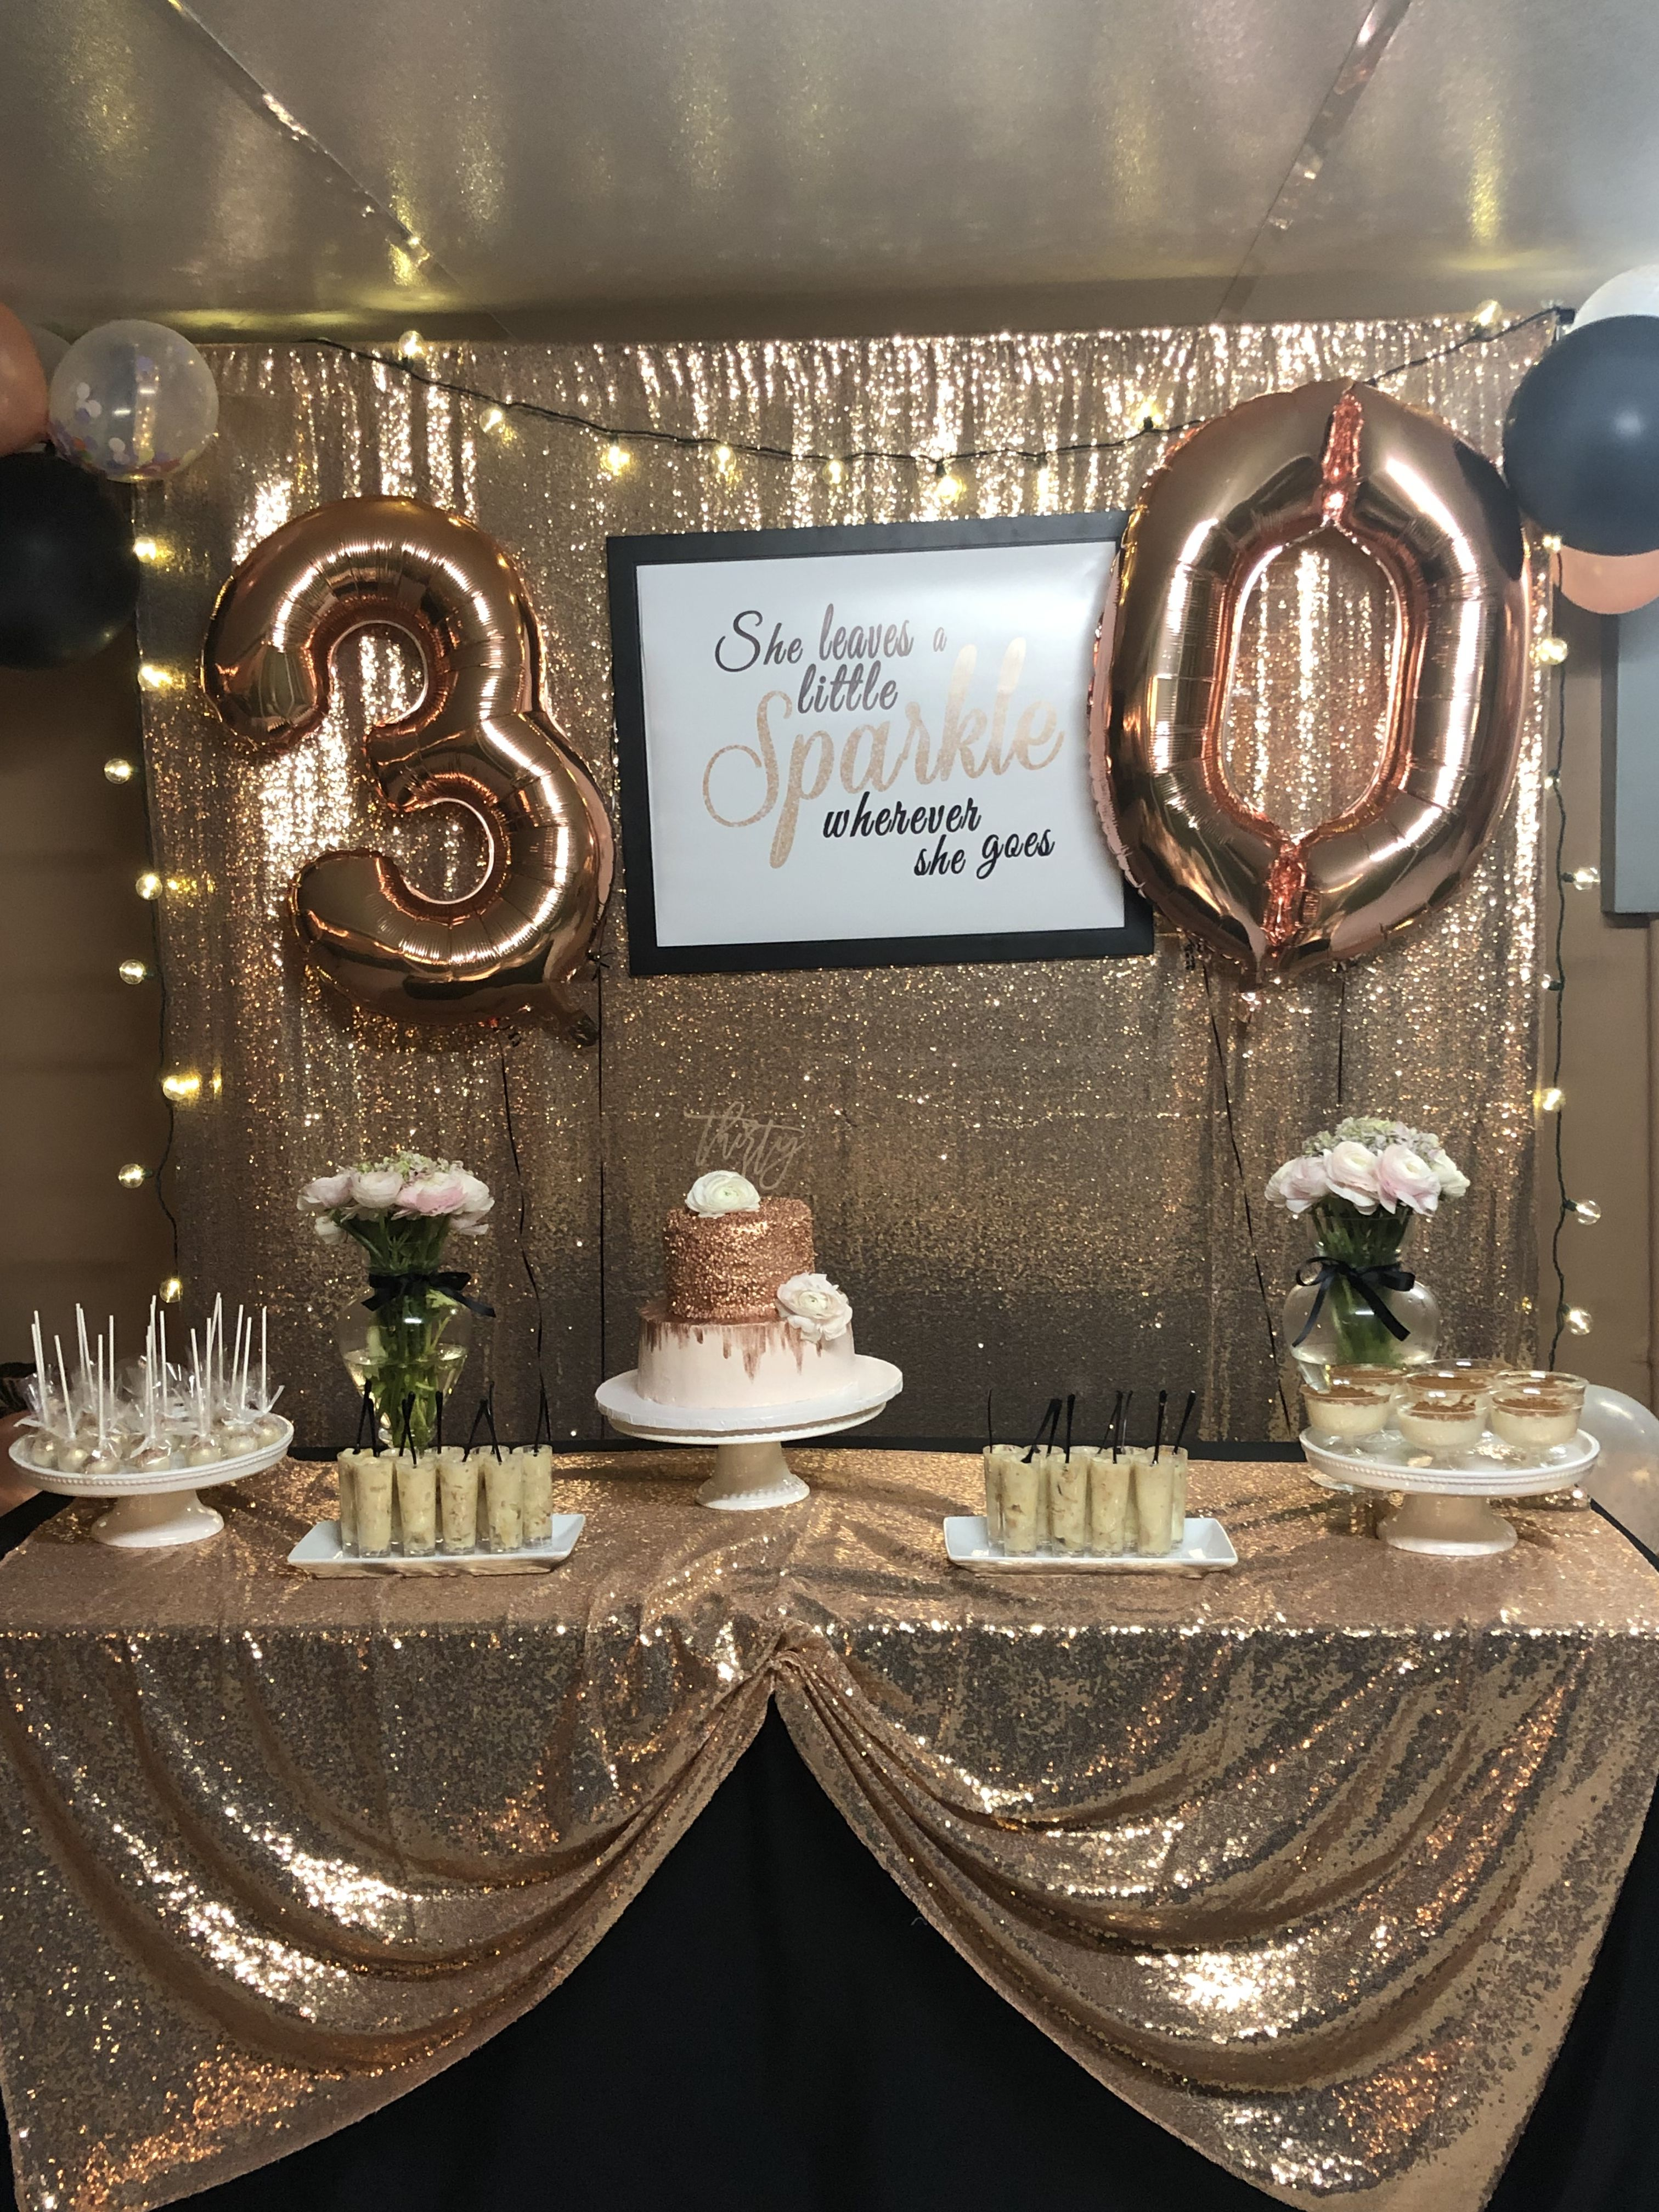 She Leaves A Little Sparkle Wherever She Goes Cake Table Backdrop Rose Gold Decor And Gold Birthday Party Decorations Sparkle Birthday Sparkle Birthday Party